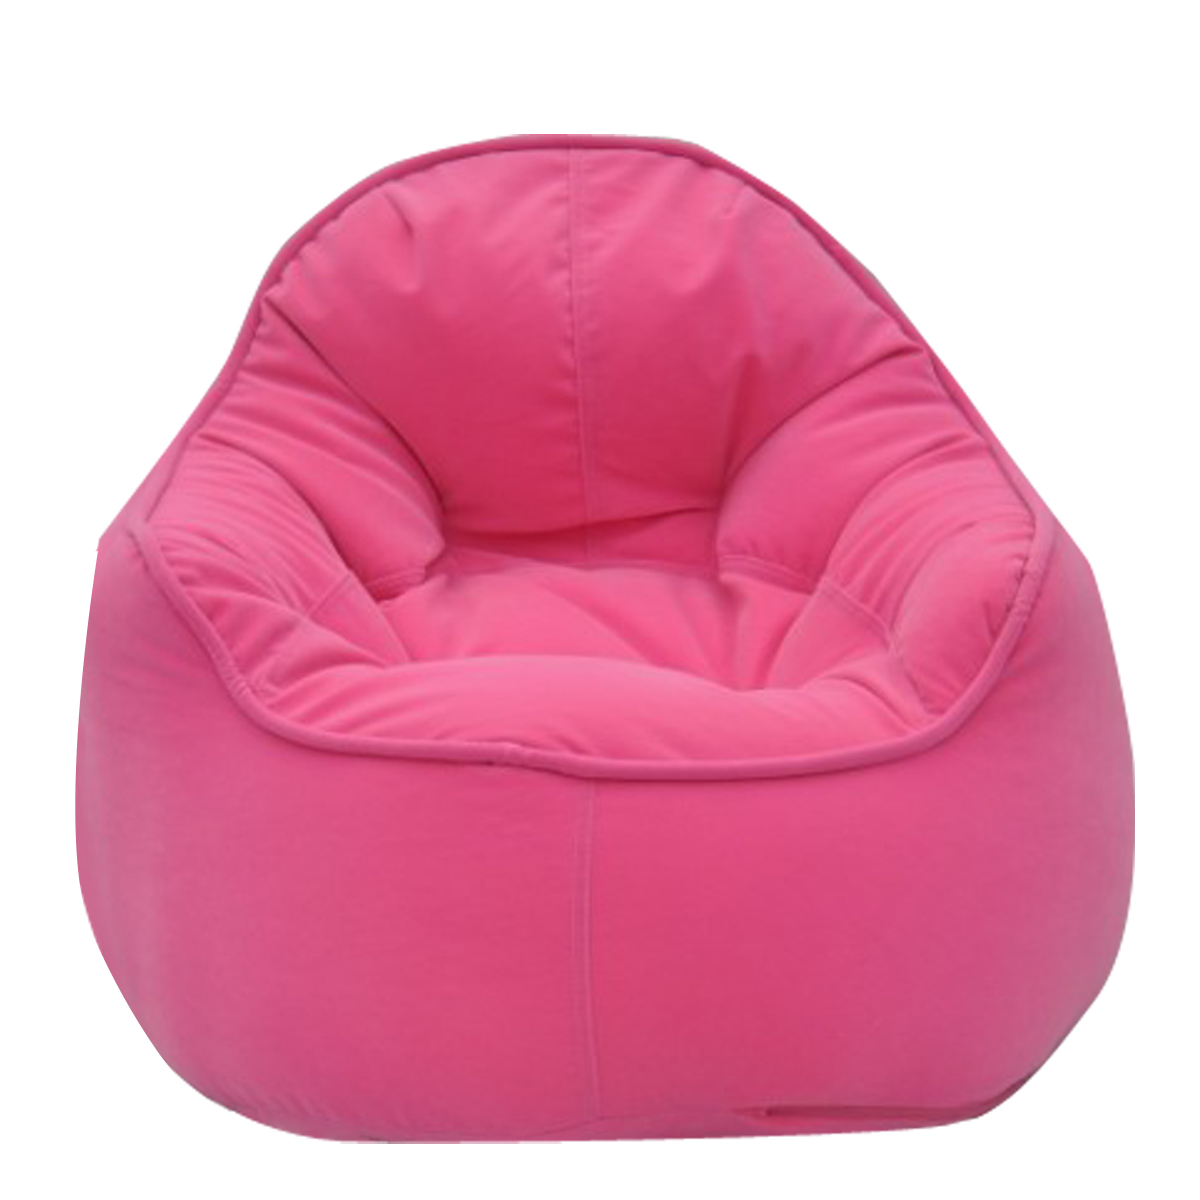 - Mini Me Pod - Bean Bag Chair - Pink -